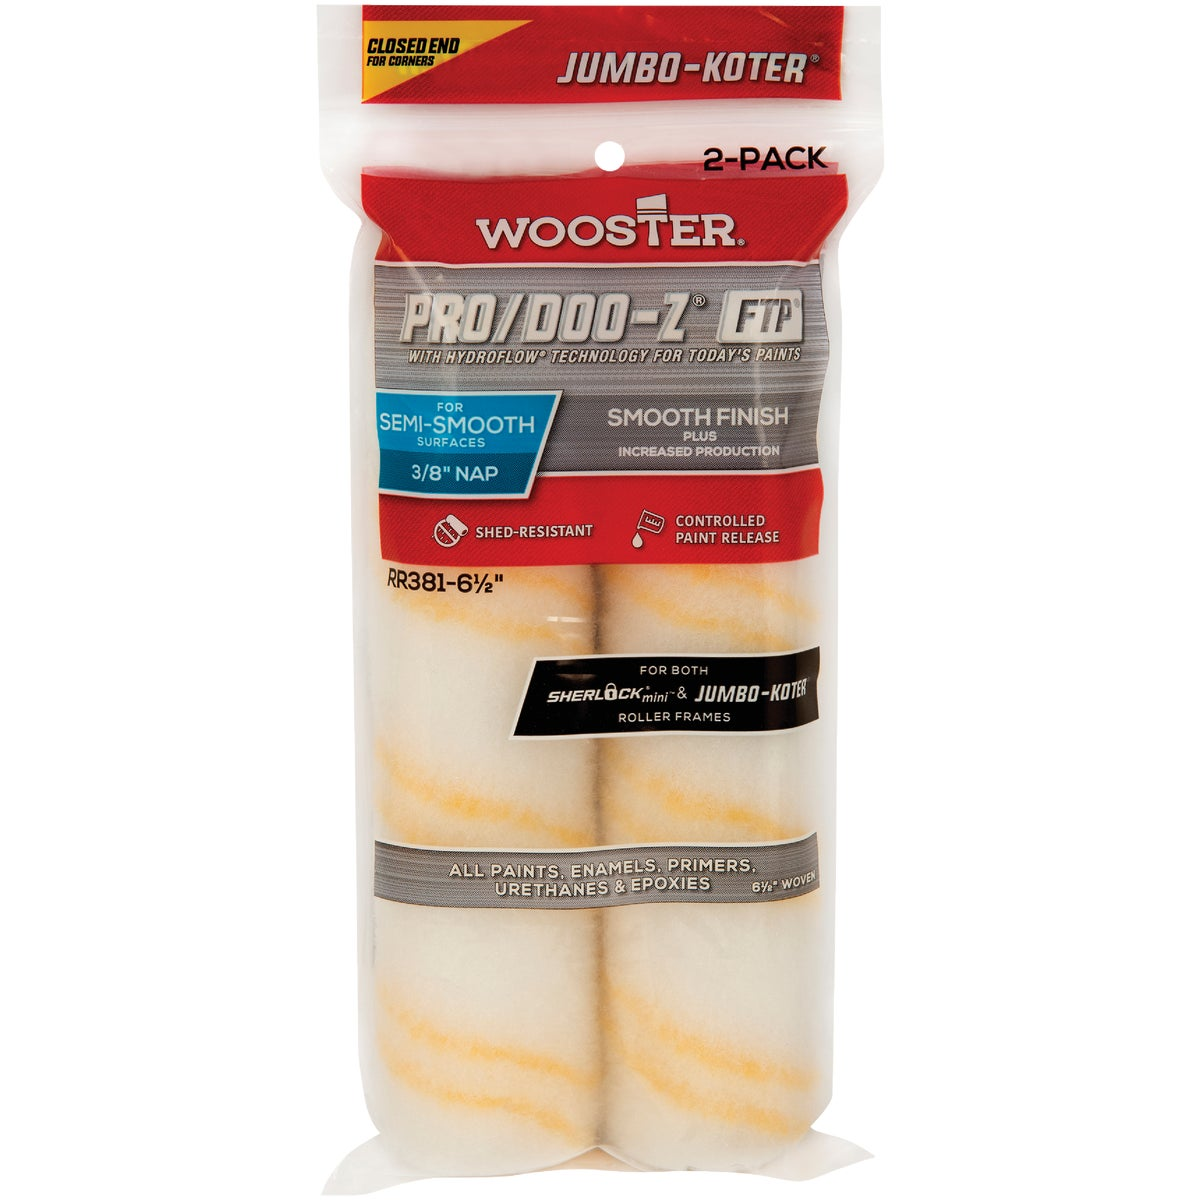 "6-1/2X3/8 ROLLER COVER - RR302-6-1/2"" by Wooster Brush Co"